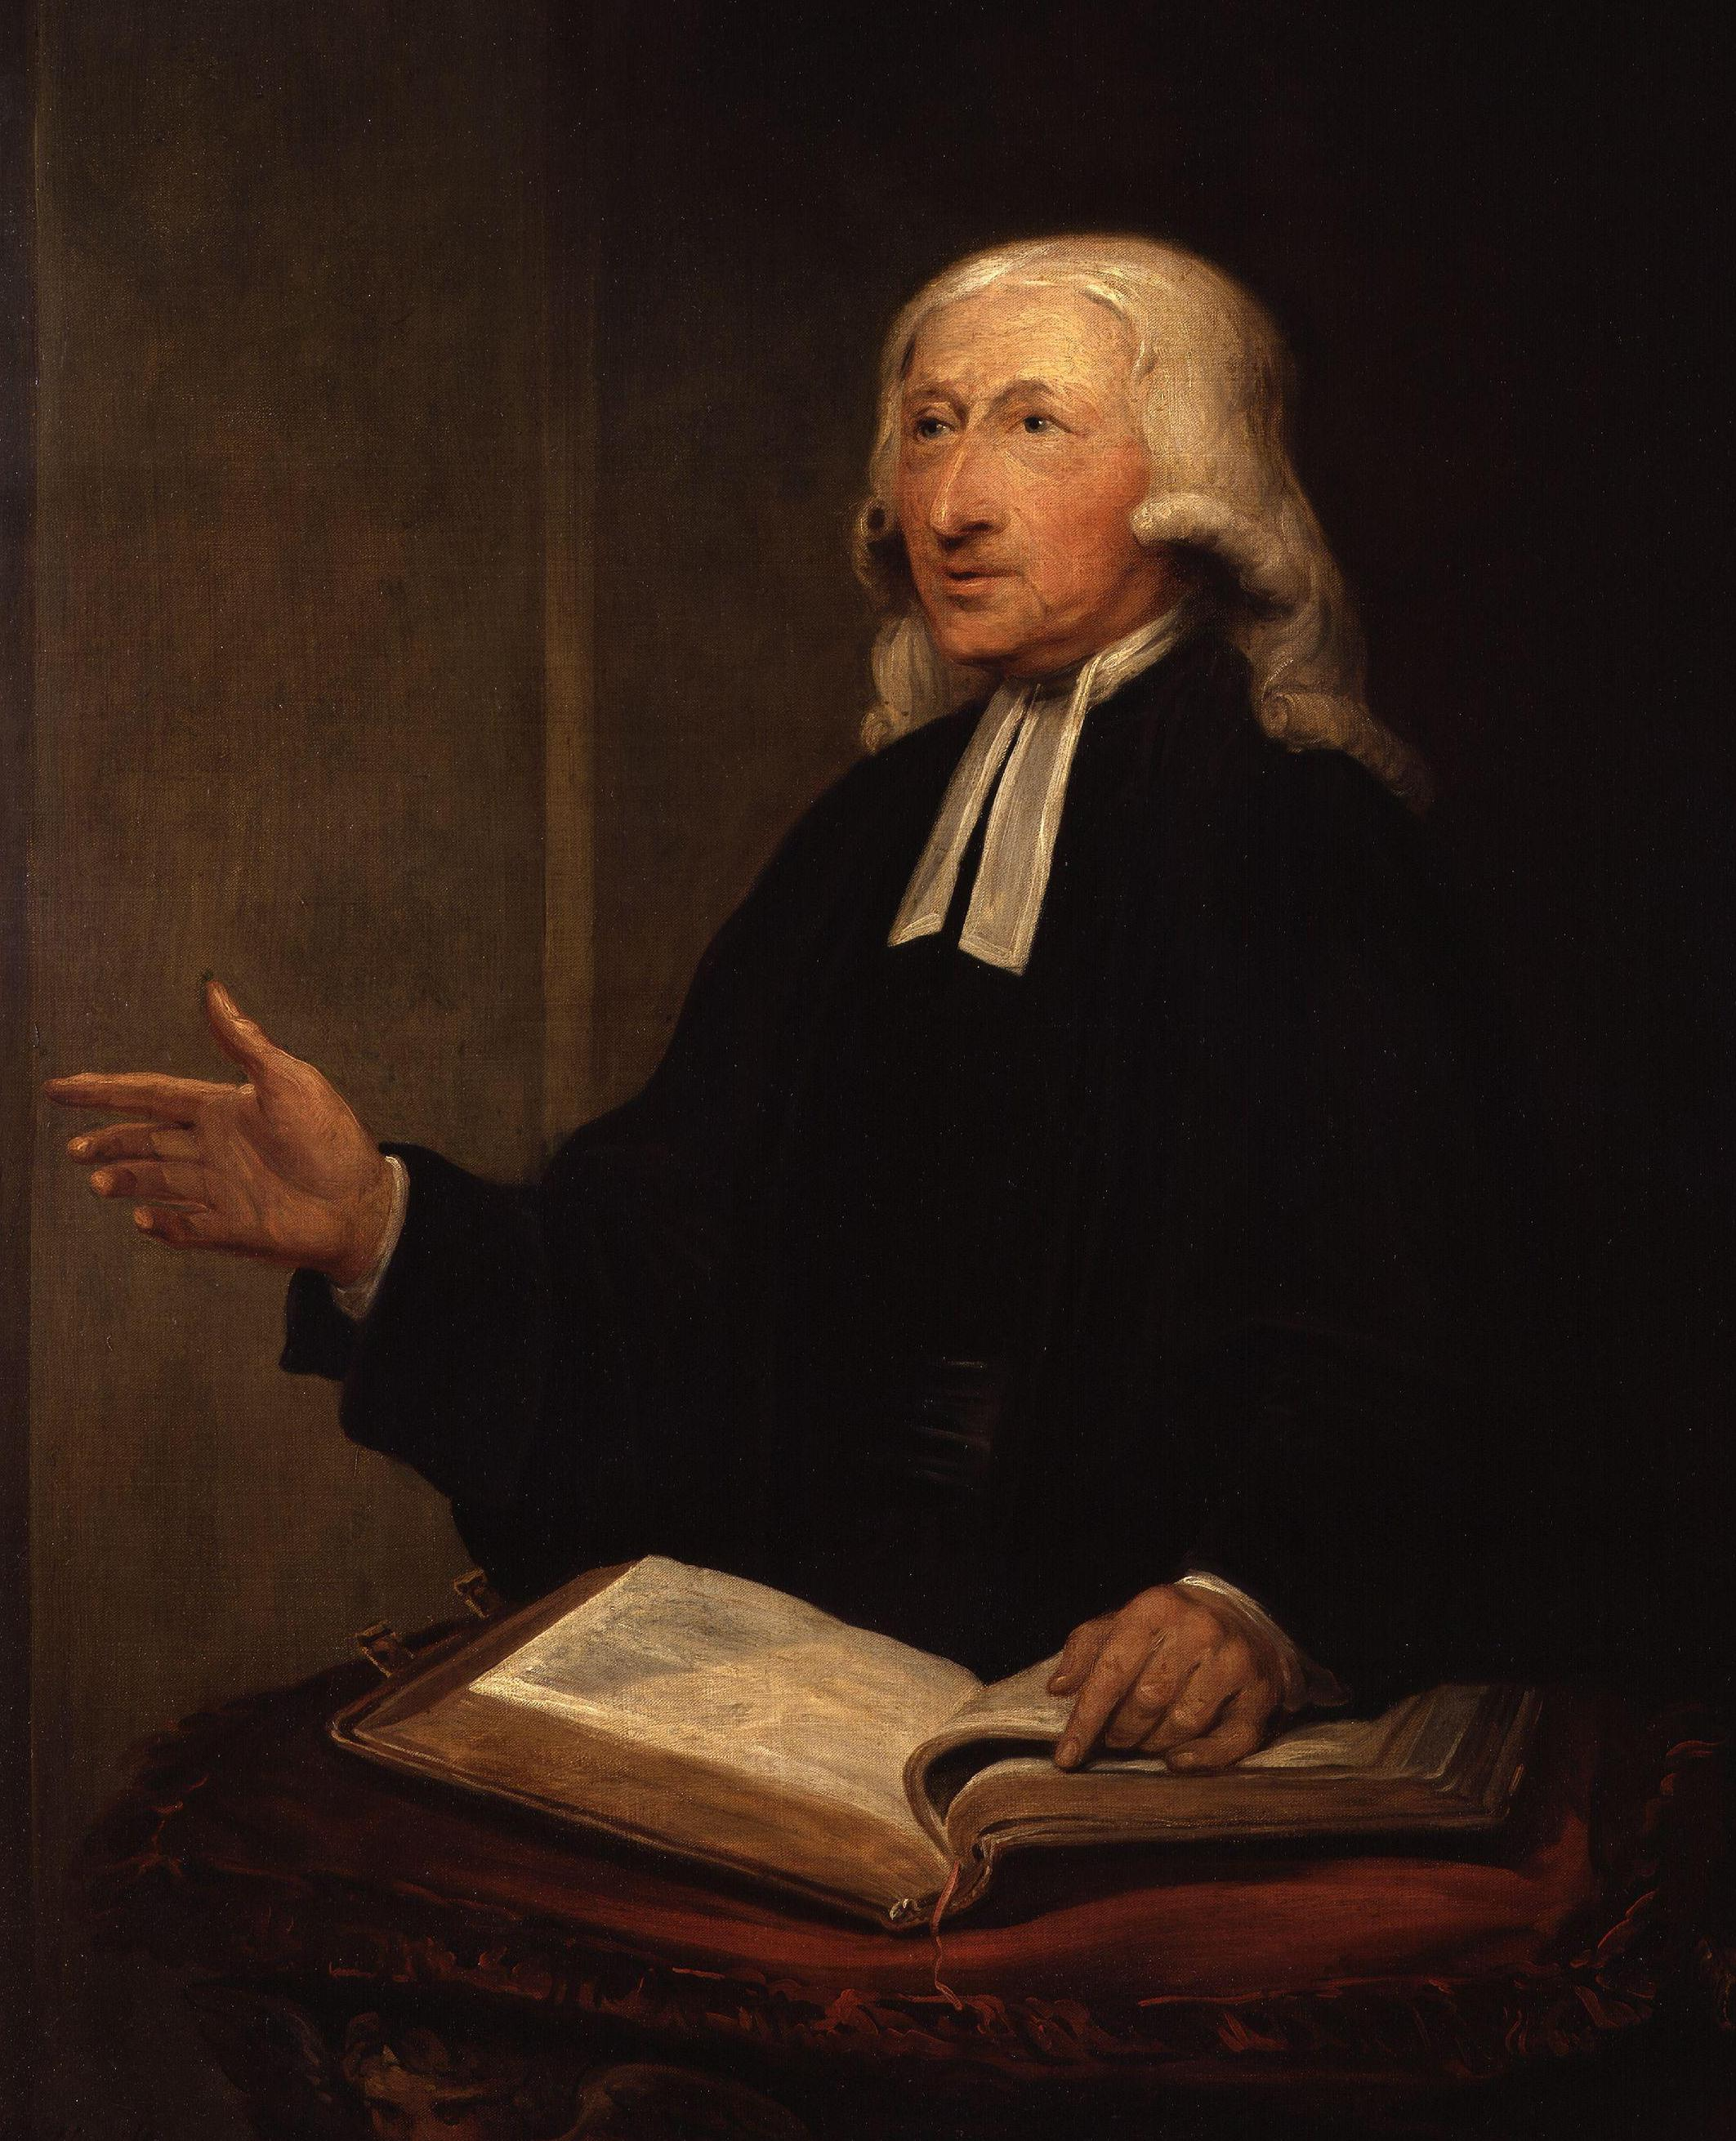 File:John Wesley by William Hamilton.jpg - Wikimedia Commons